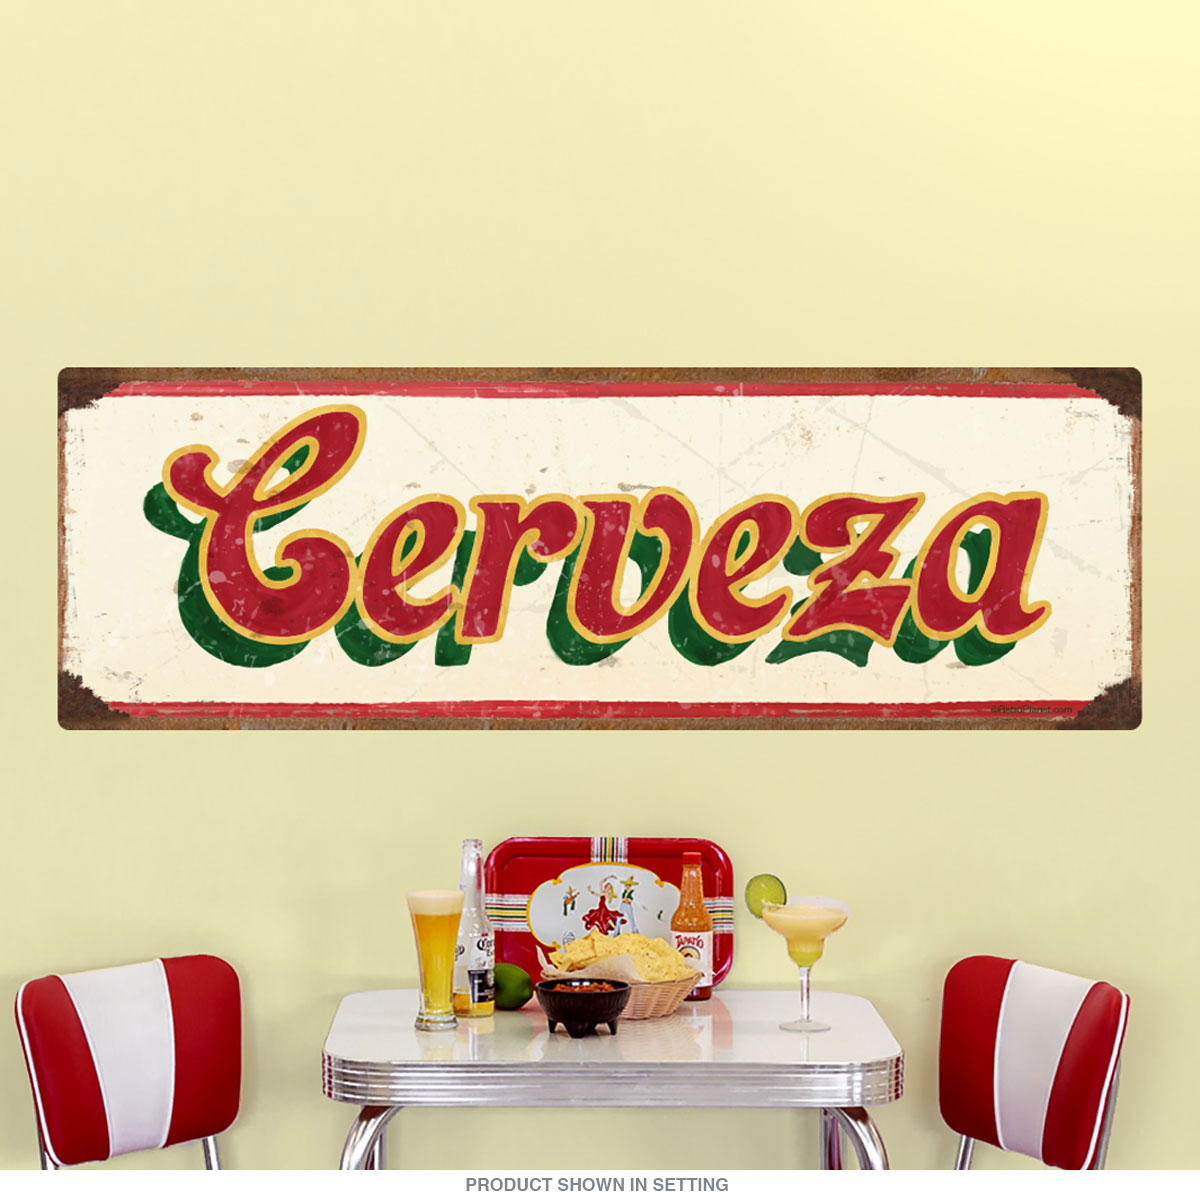 Cerveza Mexican Beer Wall Decal Cream | Kitchen Decor | RetroPlanet.com